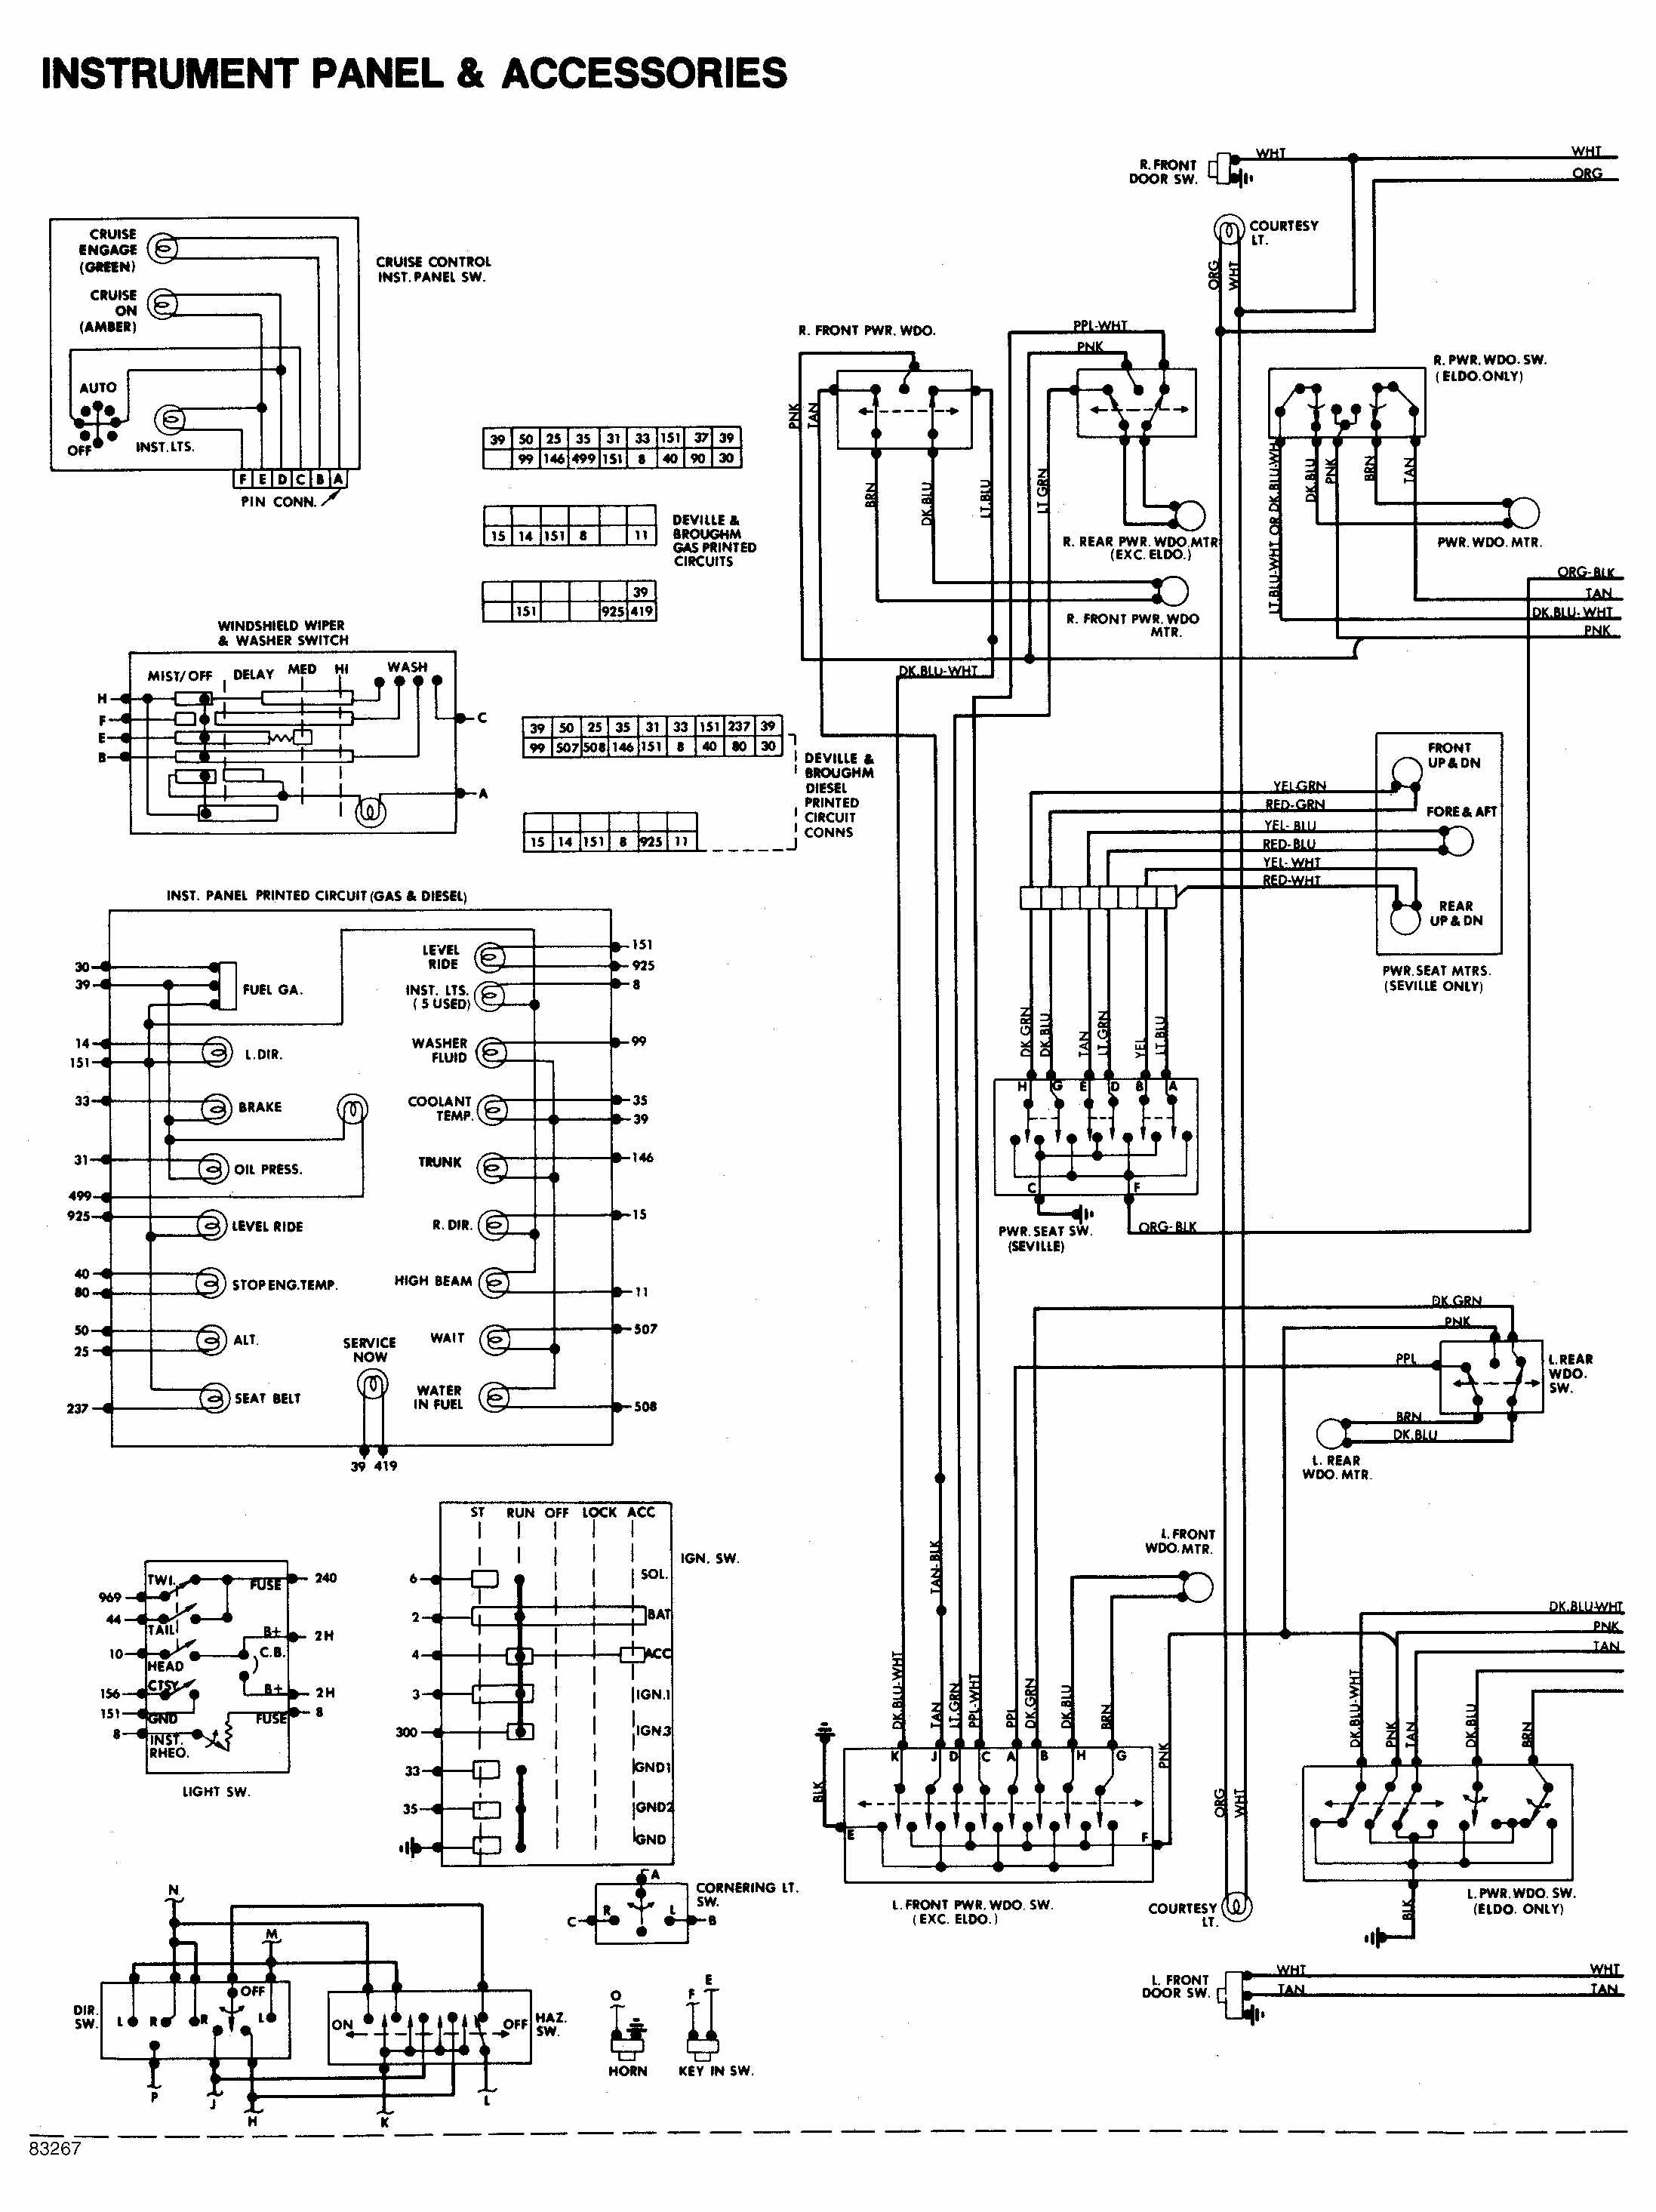 instrument panel and accessories wiring diagram of 1984 cadillac deville gm wiring diagrams gm wiring diagrams online \u2022 wiring diagrams j 1984 chevy truck fuse box diagram at panicattacktreatment.co